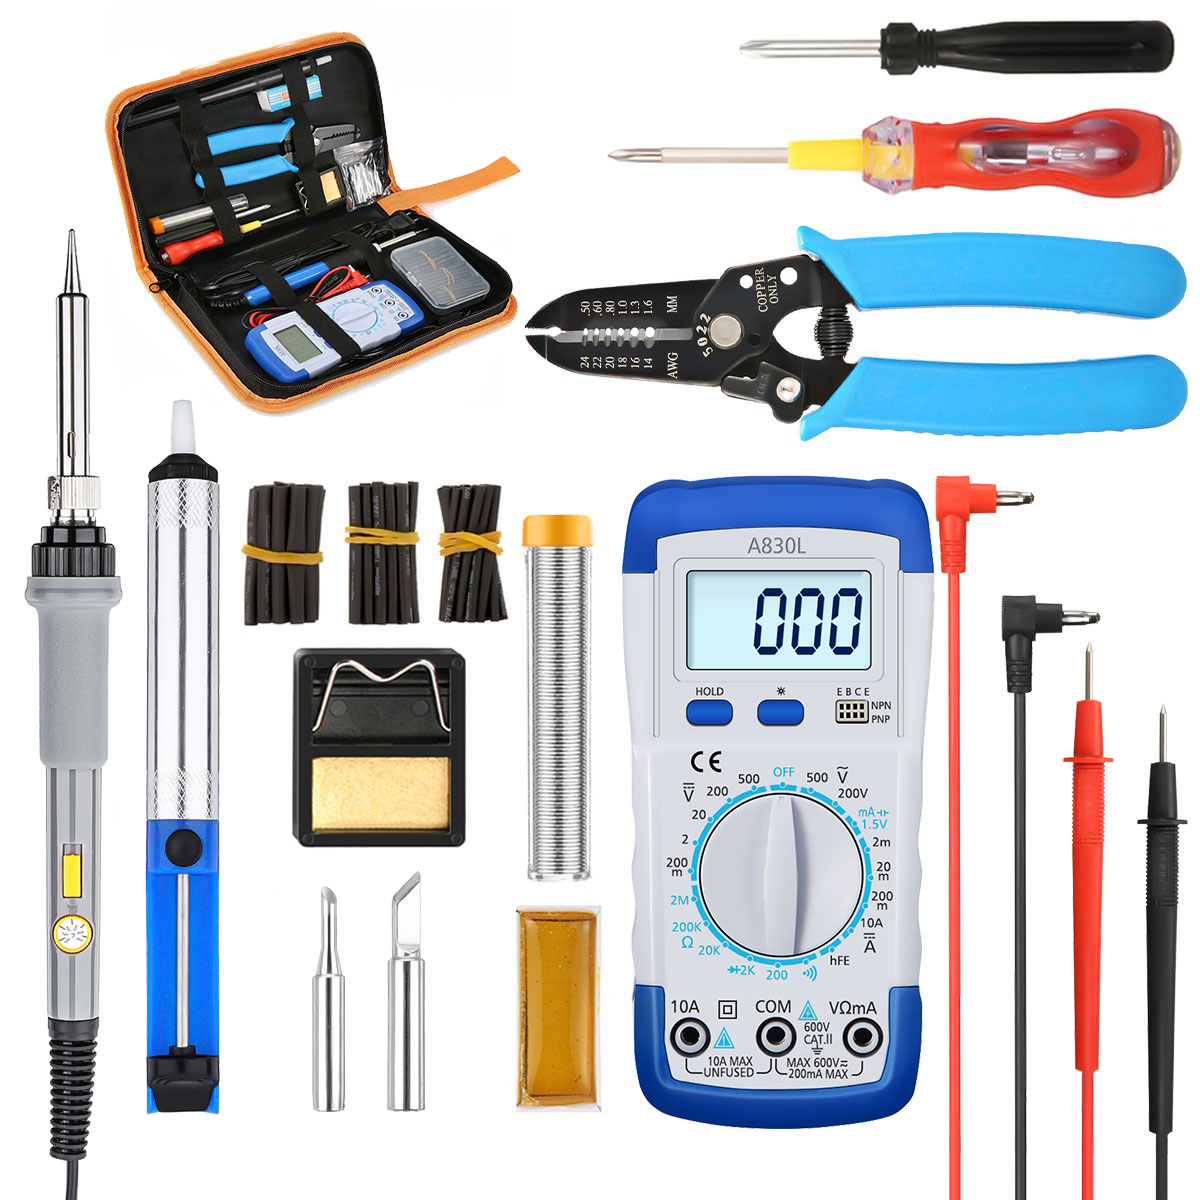 10Pcs/Set 110V 220V 60W Adjustable Temperature Electric Soldering Iron Kit Tips Heating Welding Tools With Multimeter EU/US Plug